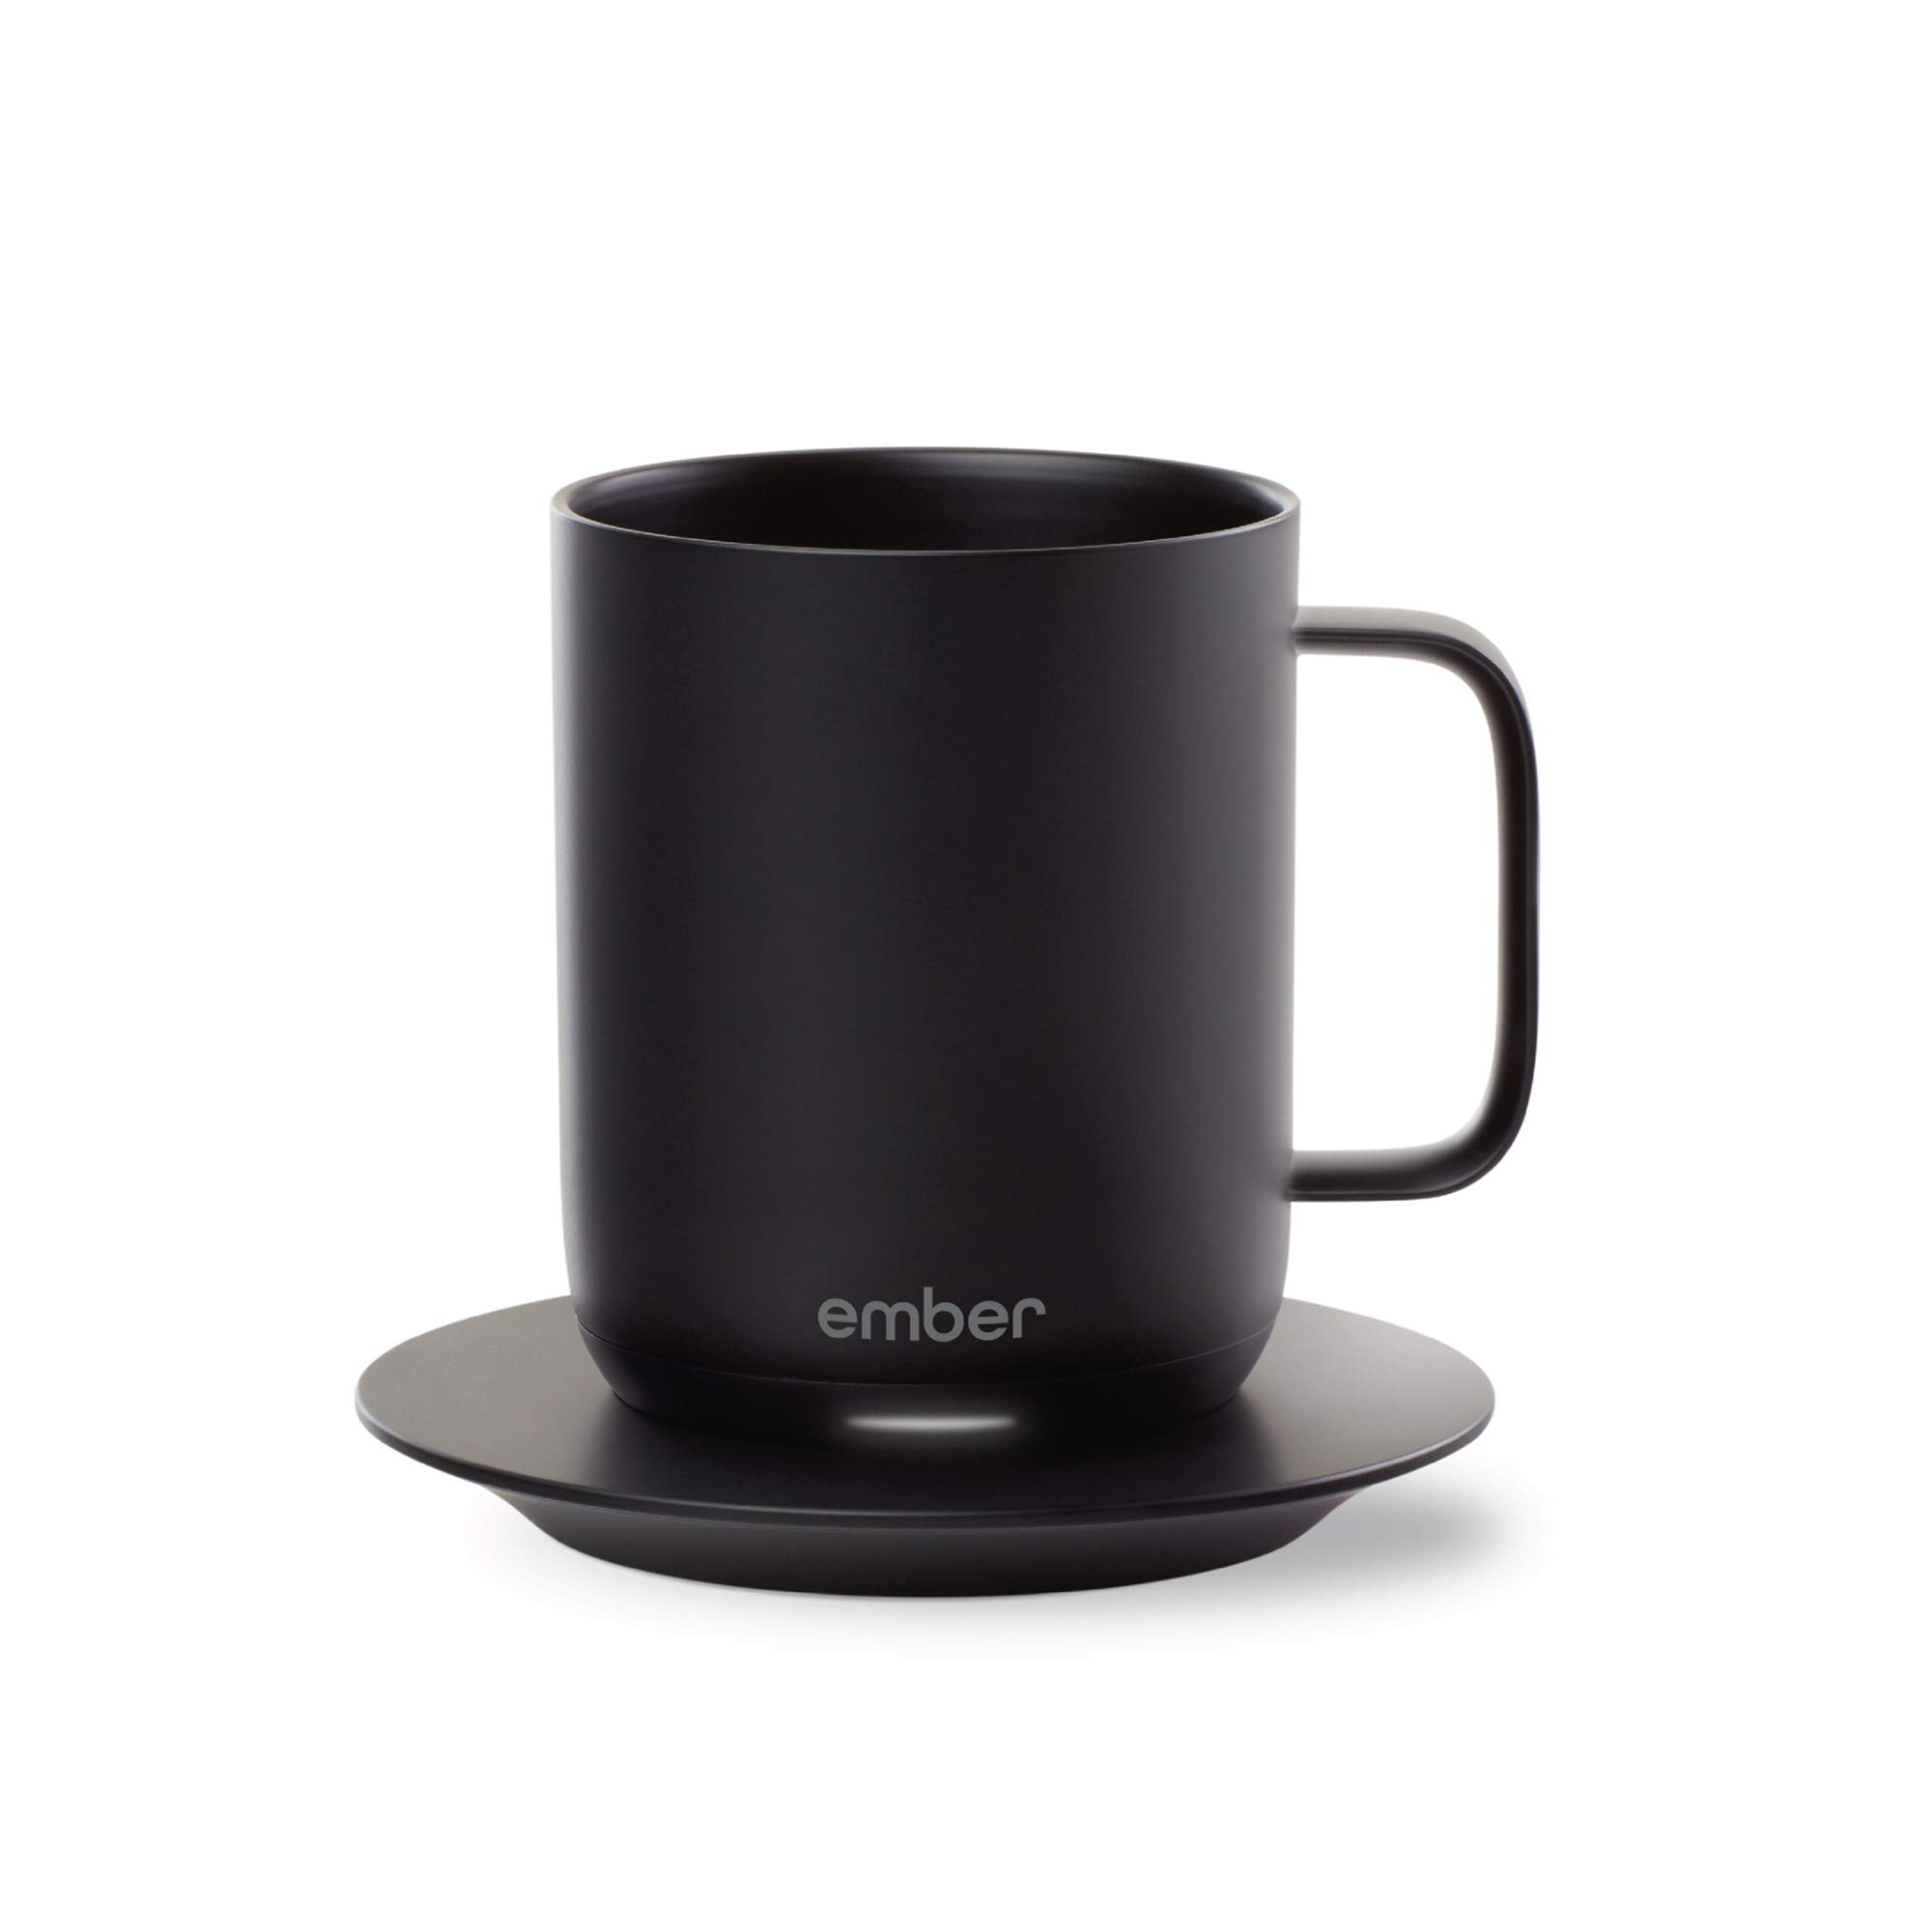 Ember Temperature Control Smart Mug, 10 oz, 1-hr Battery Life, Black - App Controlled Heated Coffee Mug by Ember